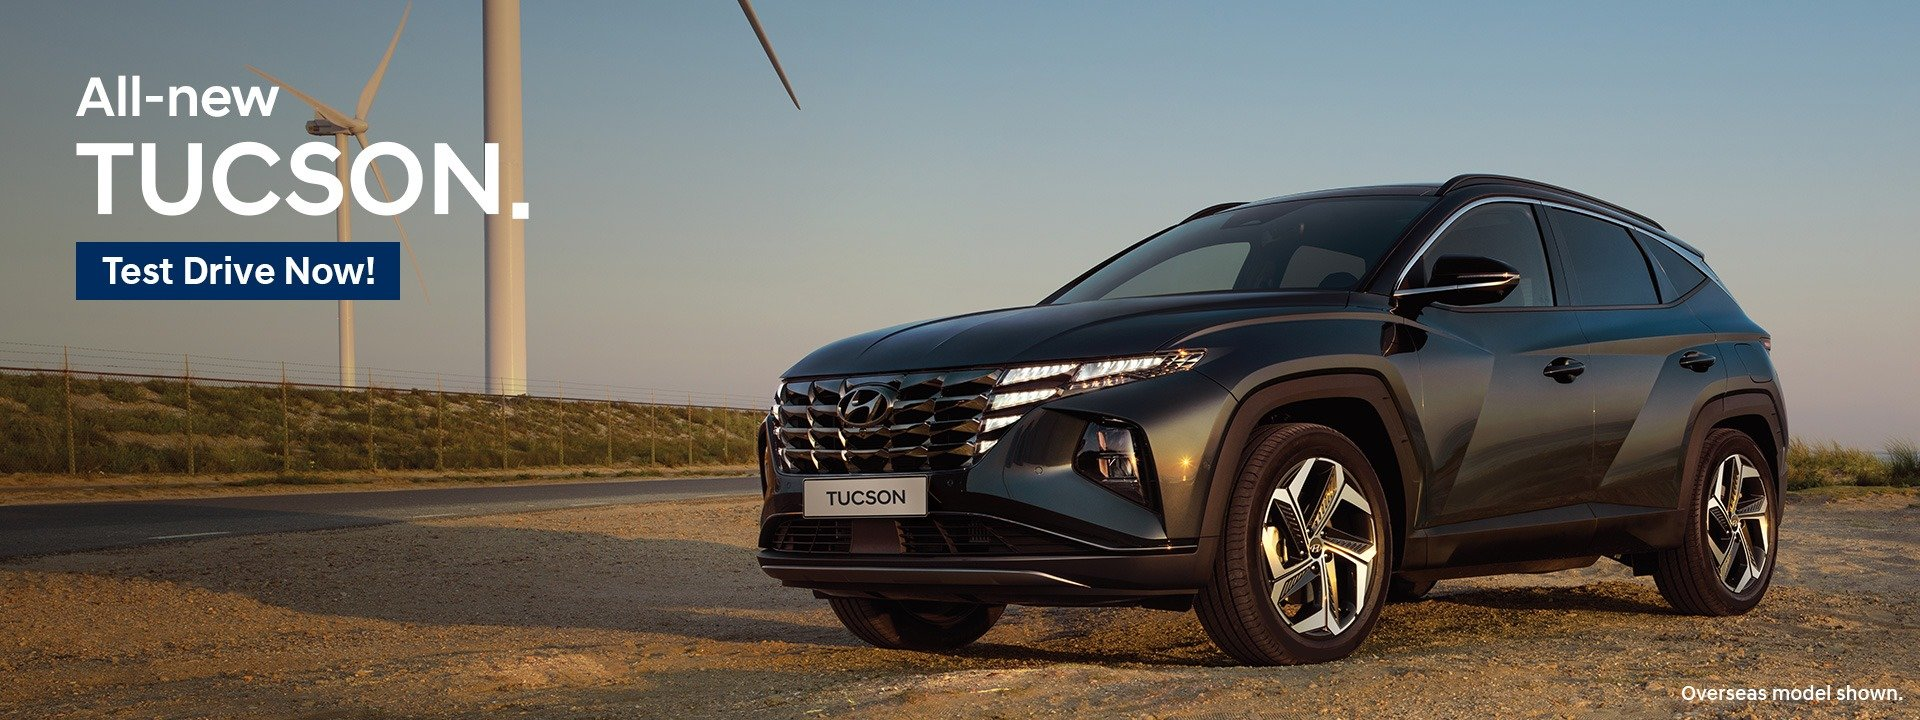 All New Tucson - Here Now